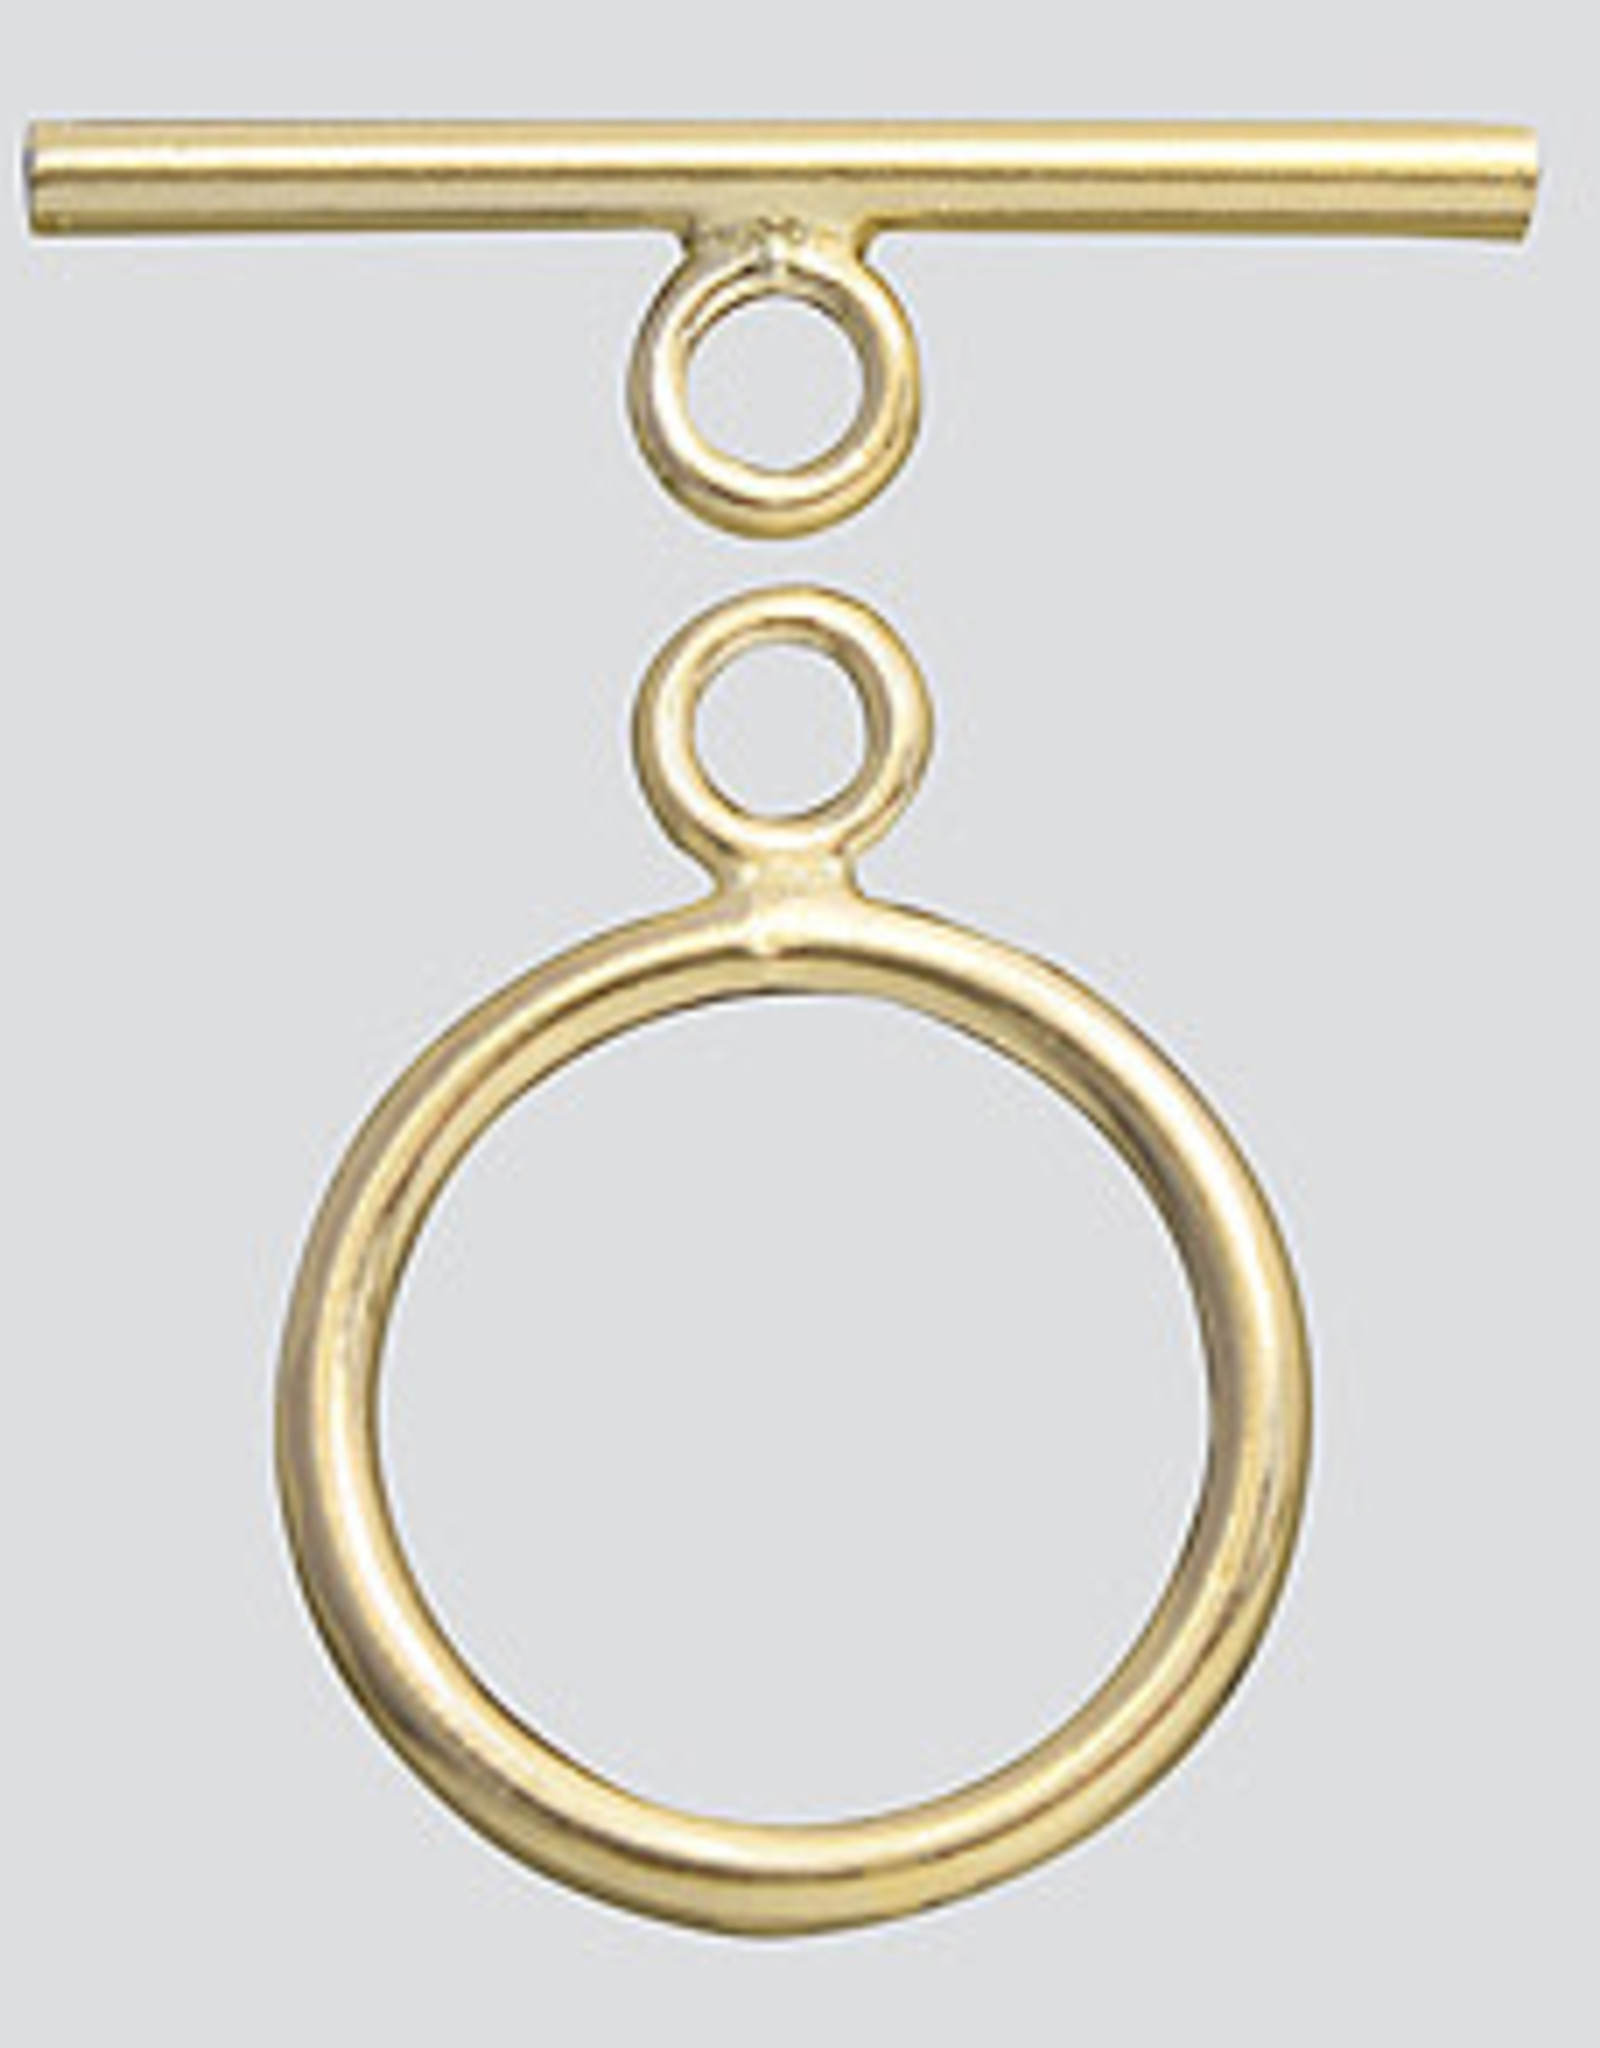 11mm Toggle Clasp 14k Gold Filled ea